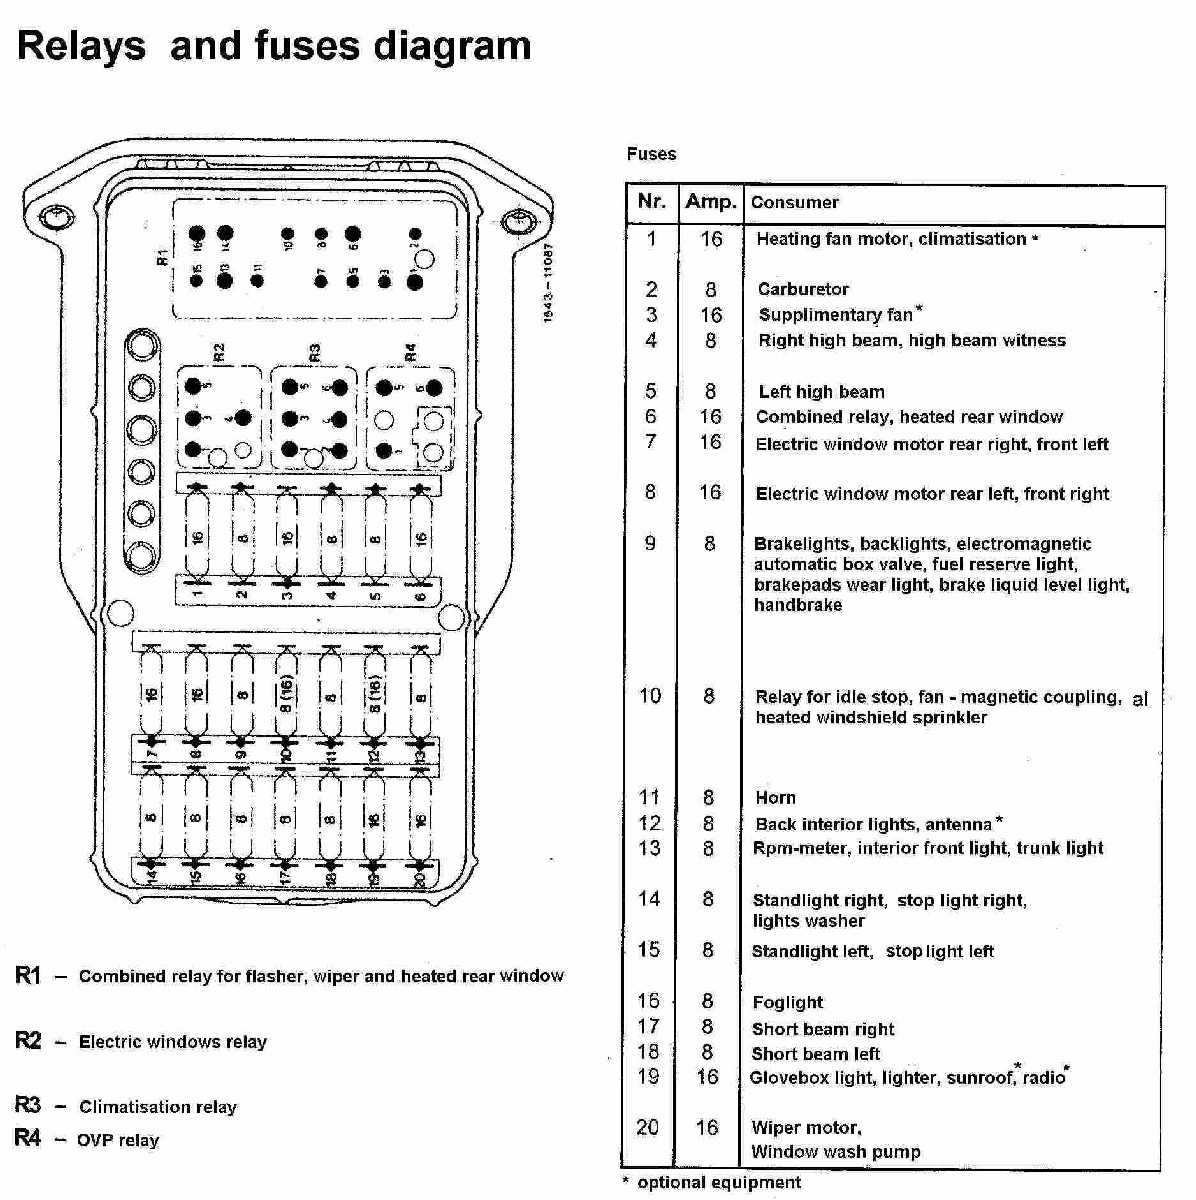 D Fuse Relays E on 2005 Mazda 3 Fuse Diagram